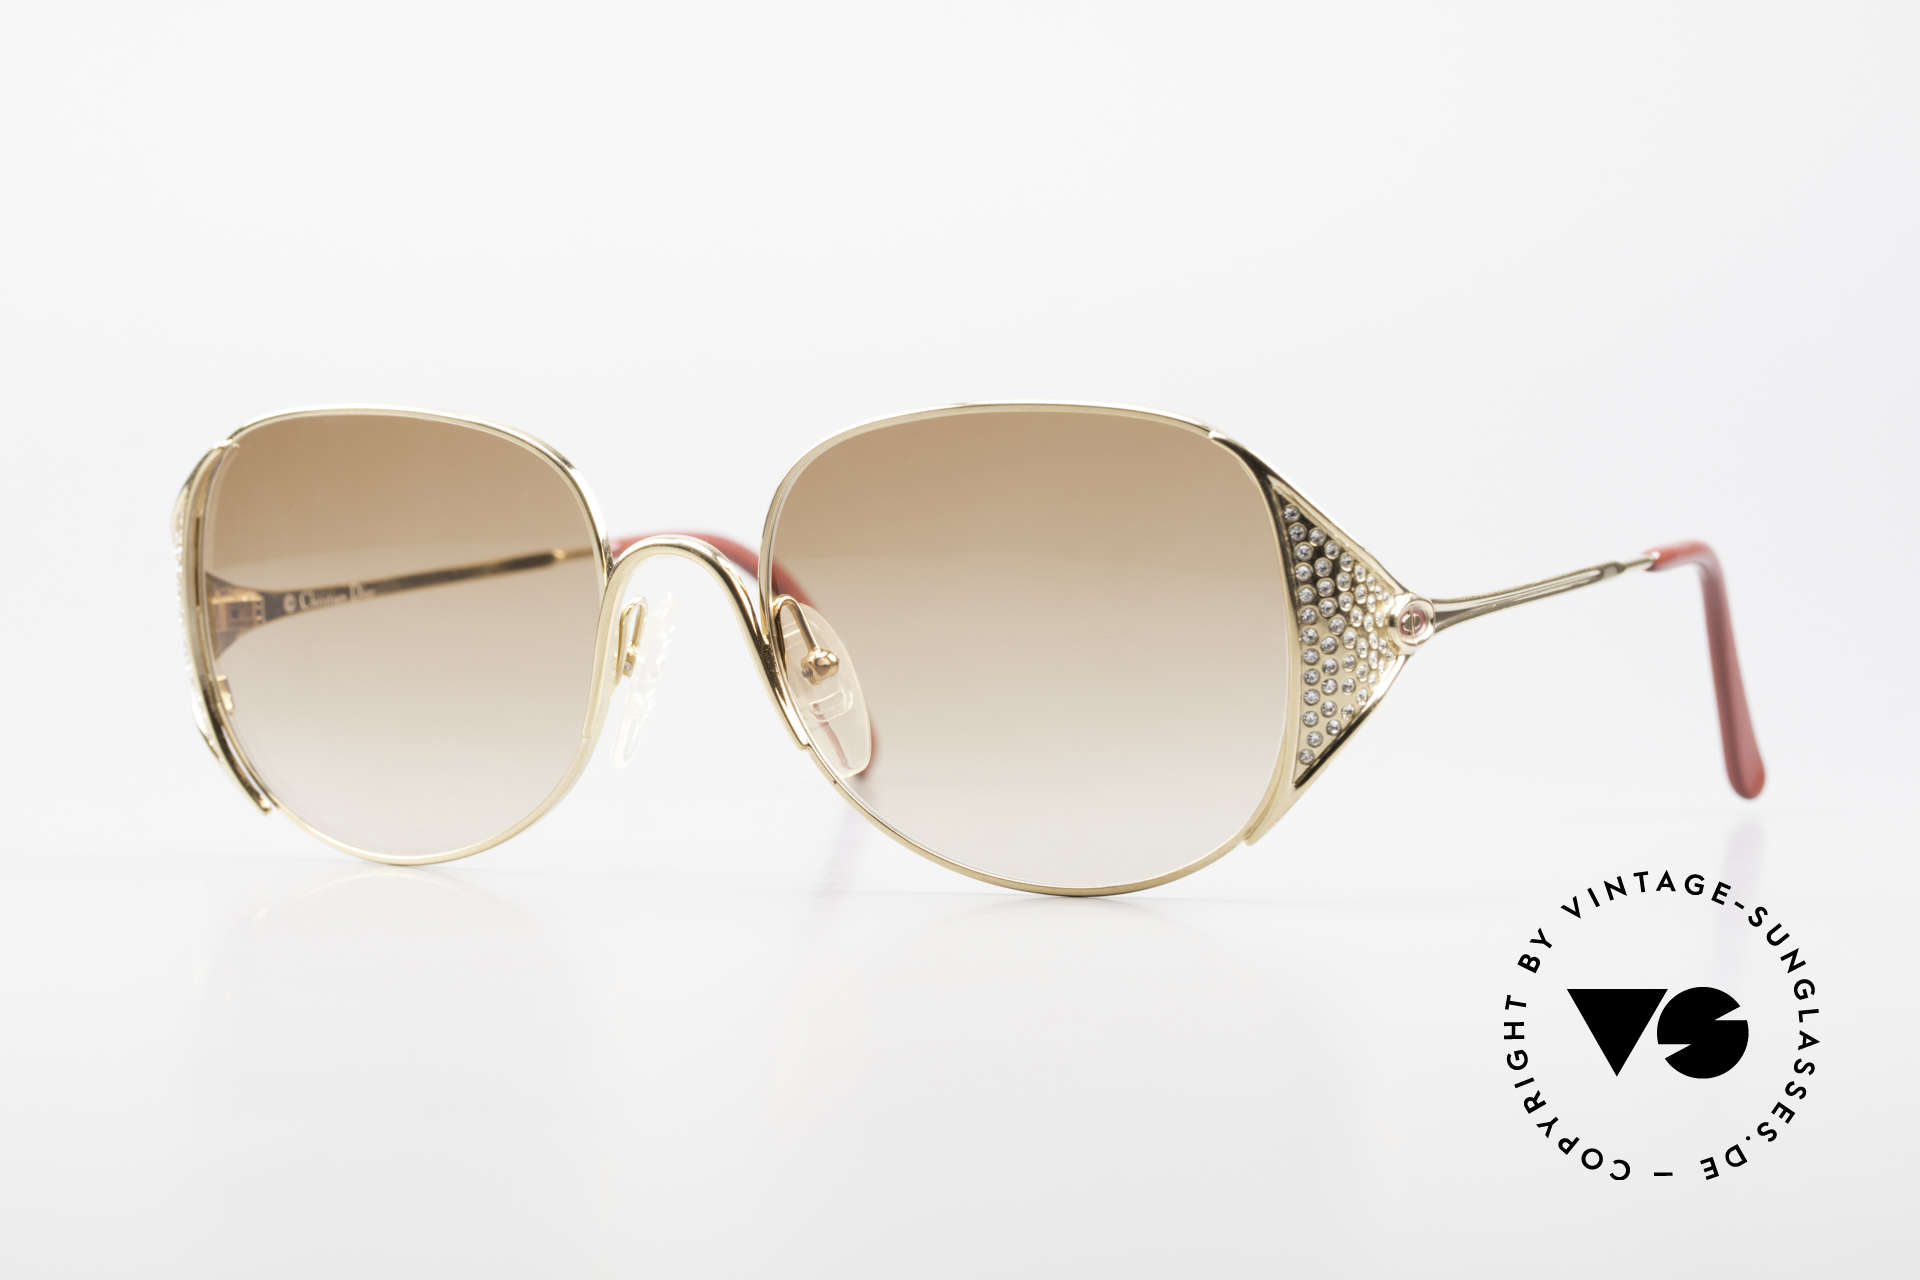 Christian Dior 2362 Ladies Sunglasses Rhinestone, luxurious frame for women from the 80's by C. Dior, Made for Women